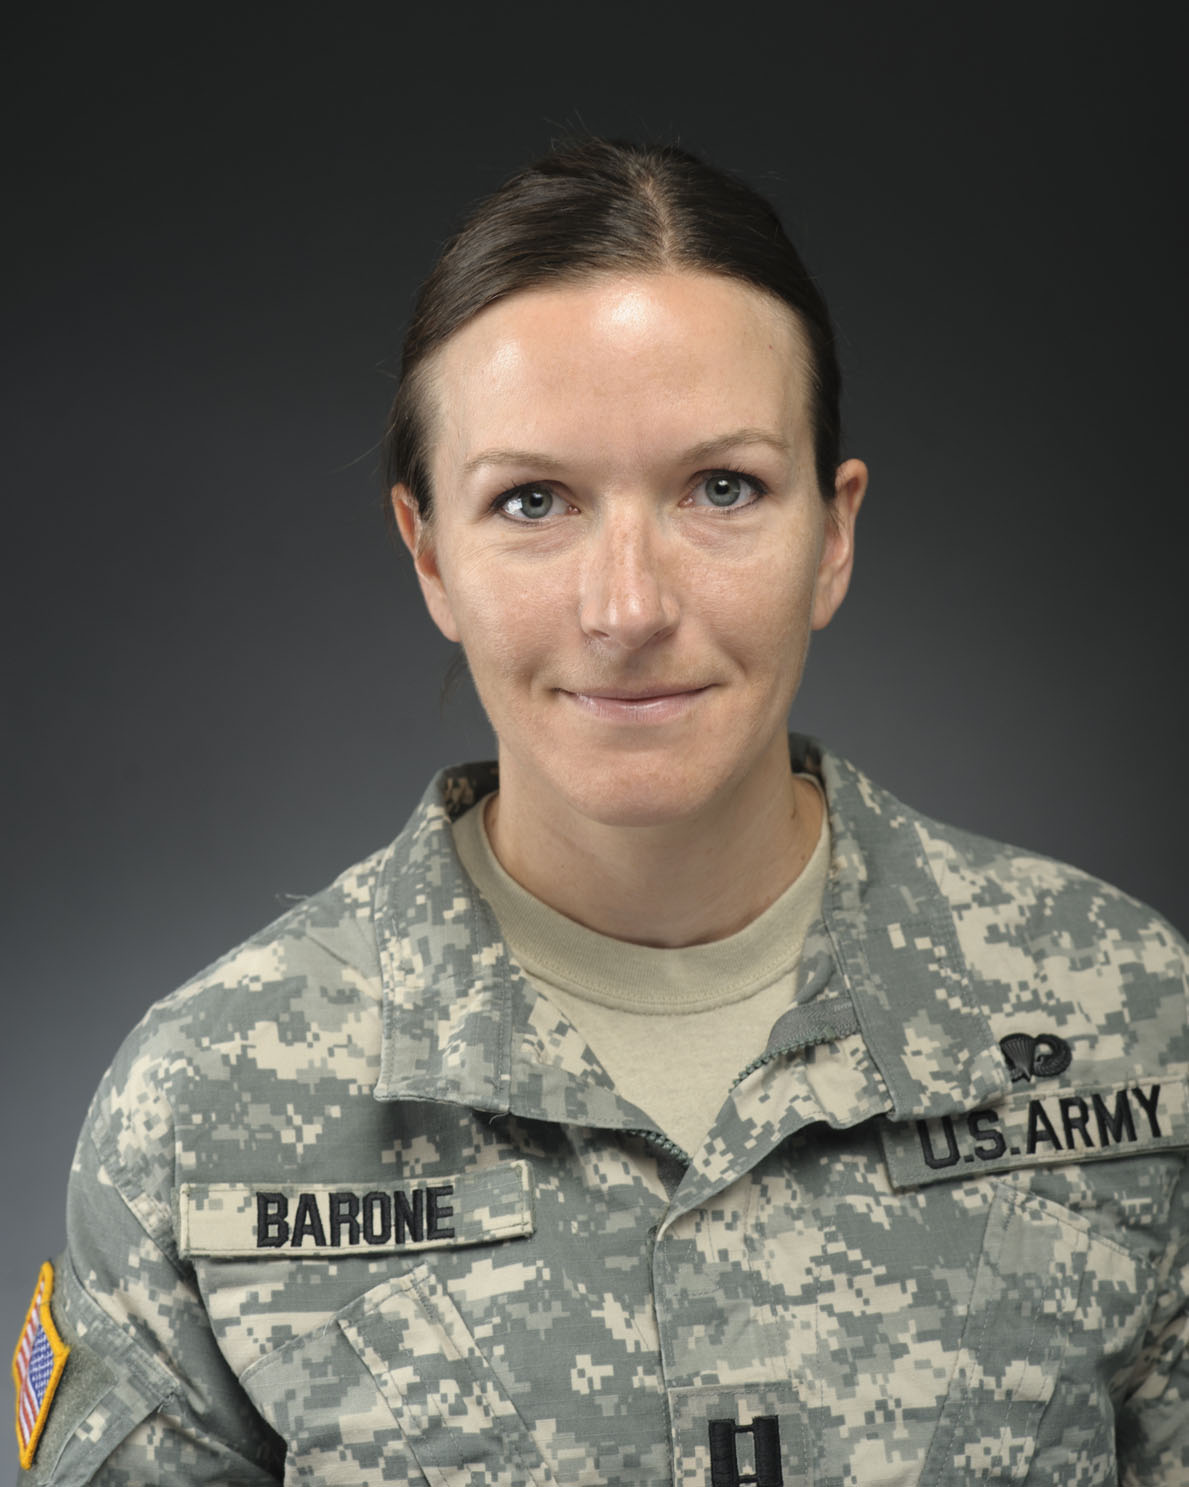 CPT Kelly Barone